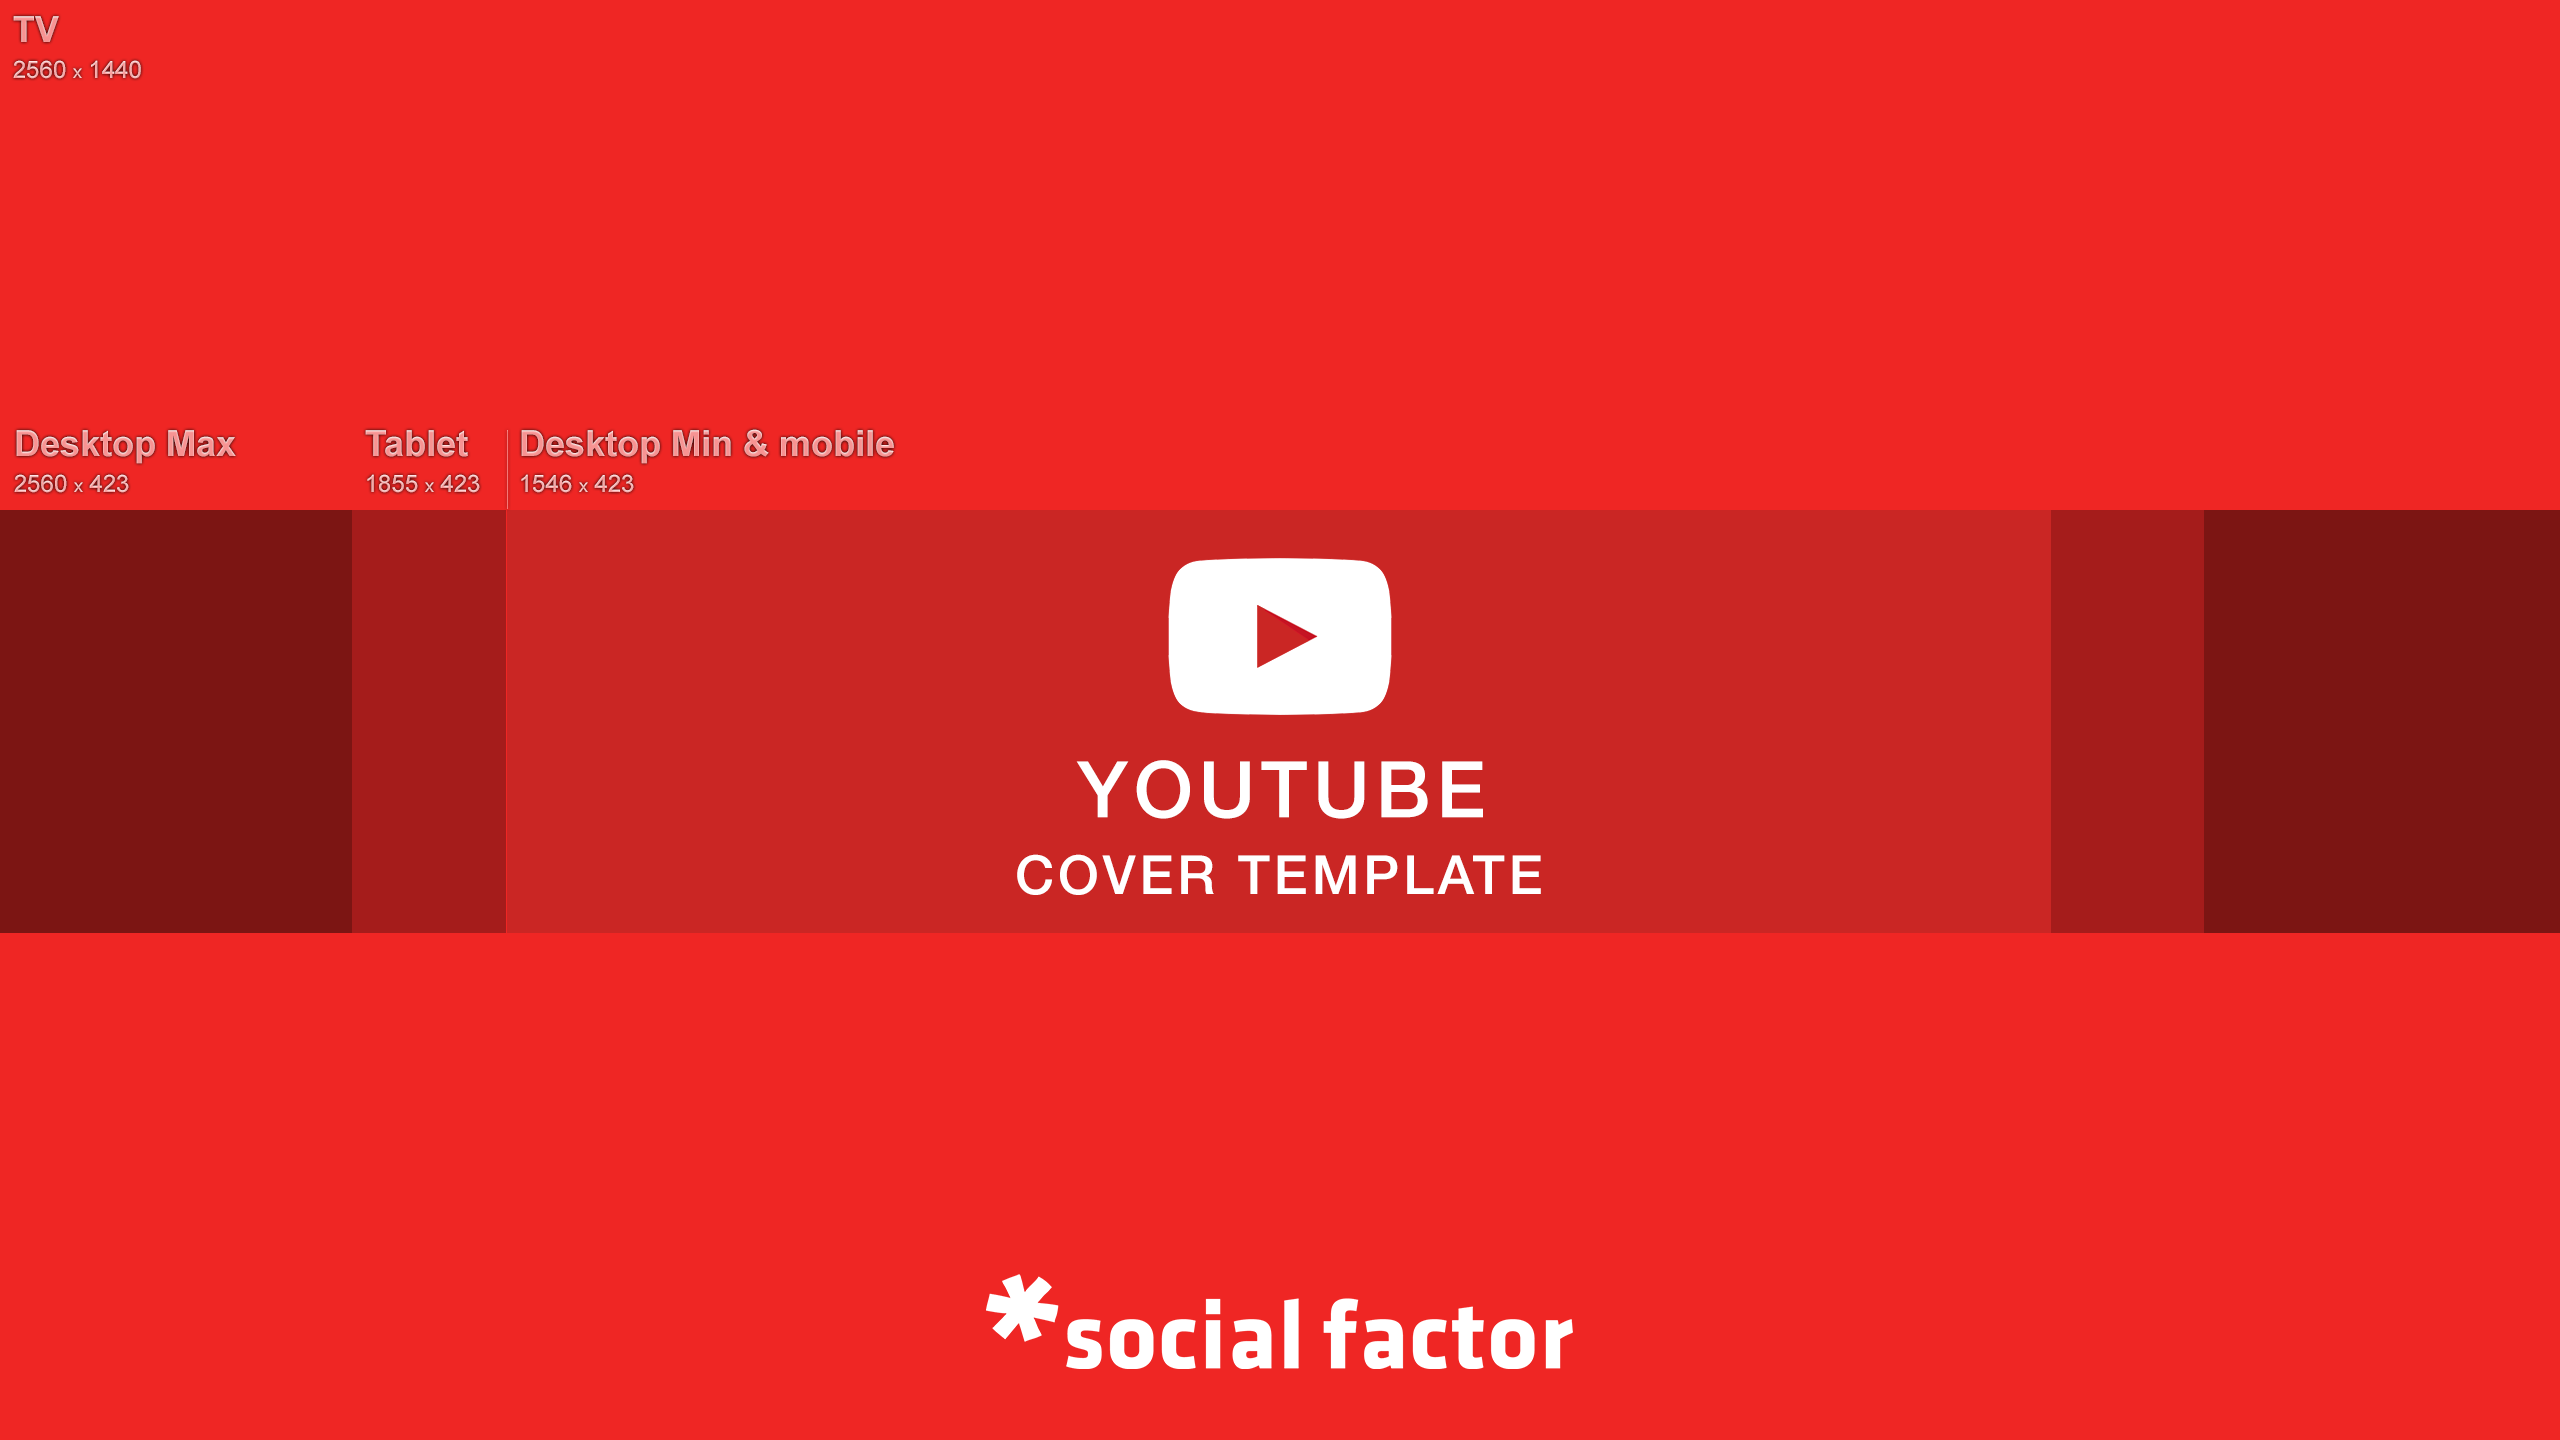 YouTube Cover Template